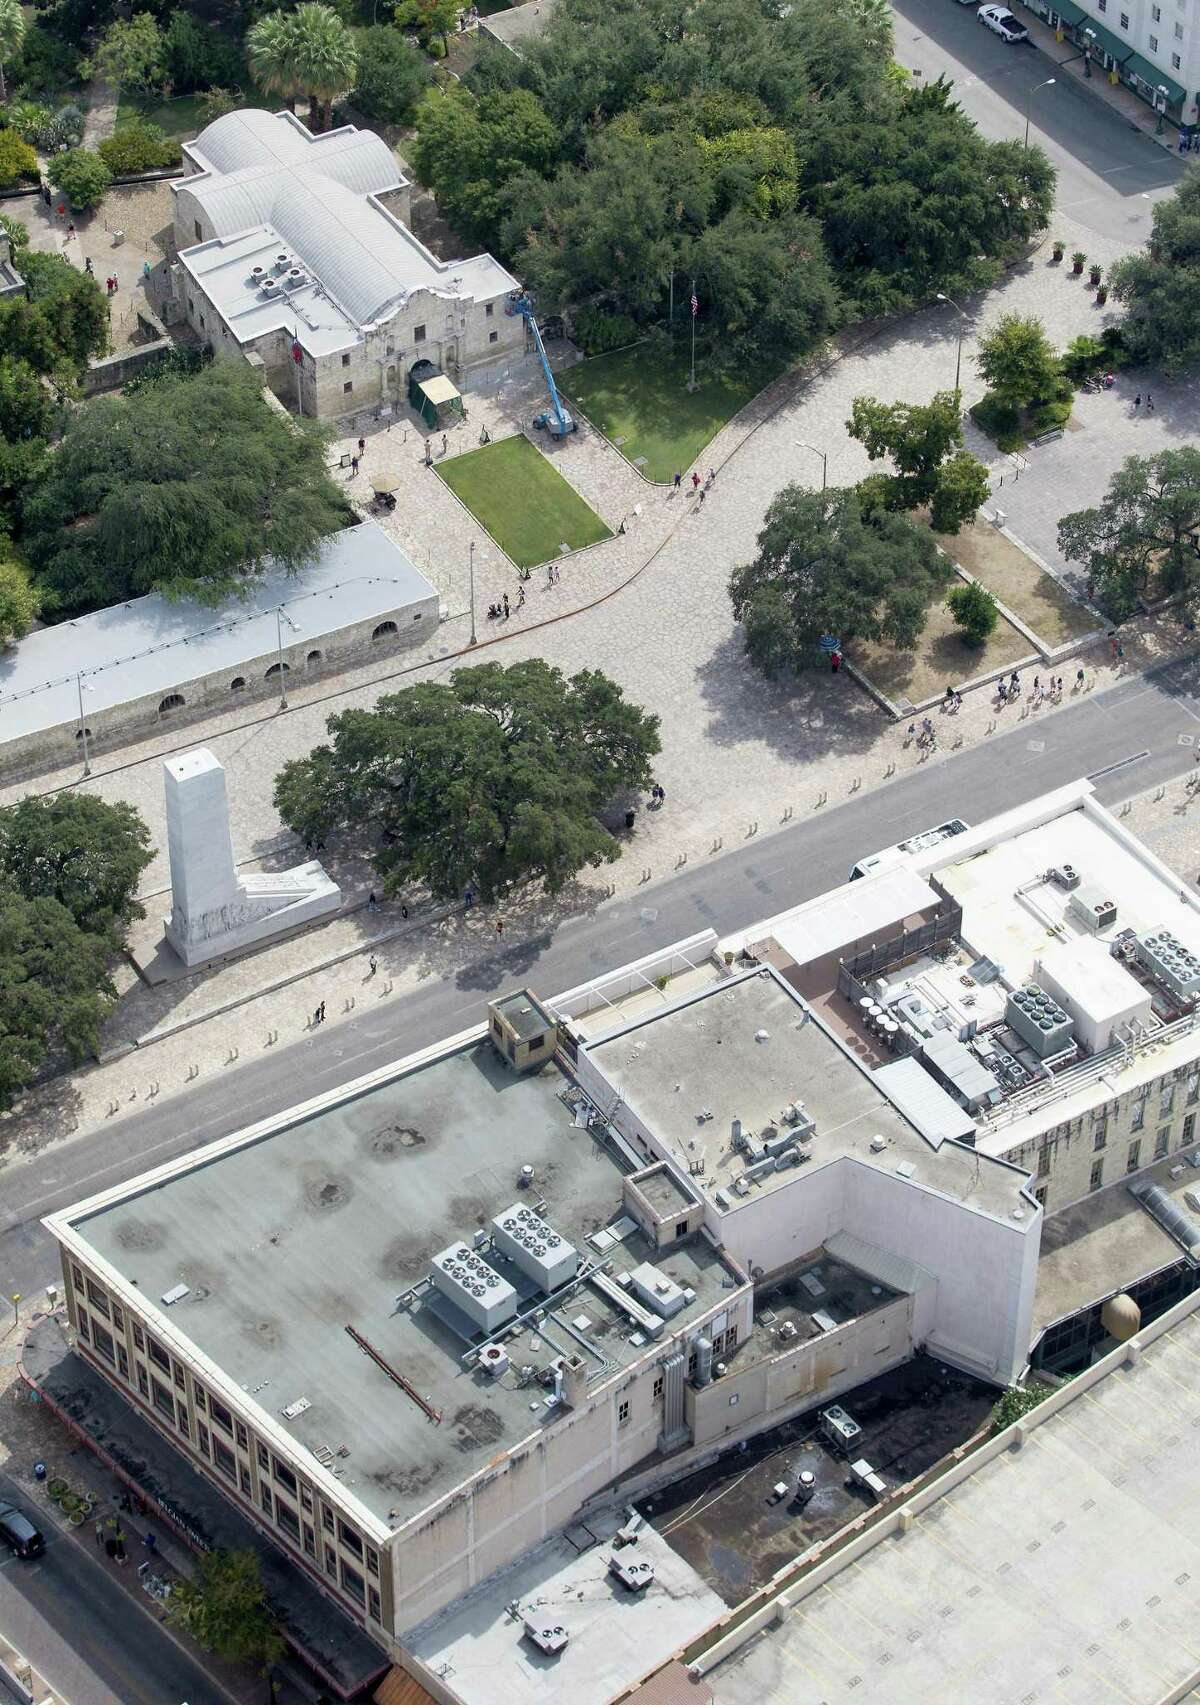 San Antonio is moving forward on what could be a controversial proposal to close Alamo Plaza to vehicle traffic as part of a plan to create a